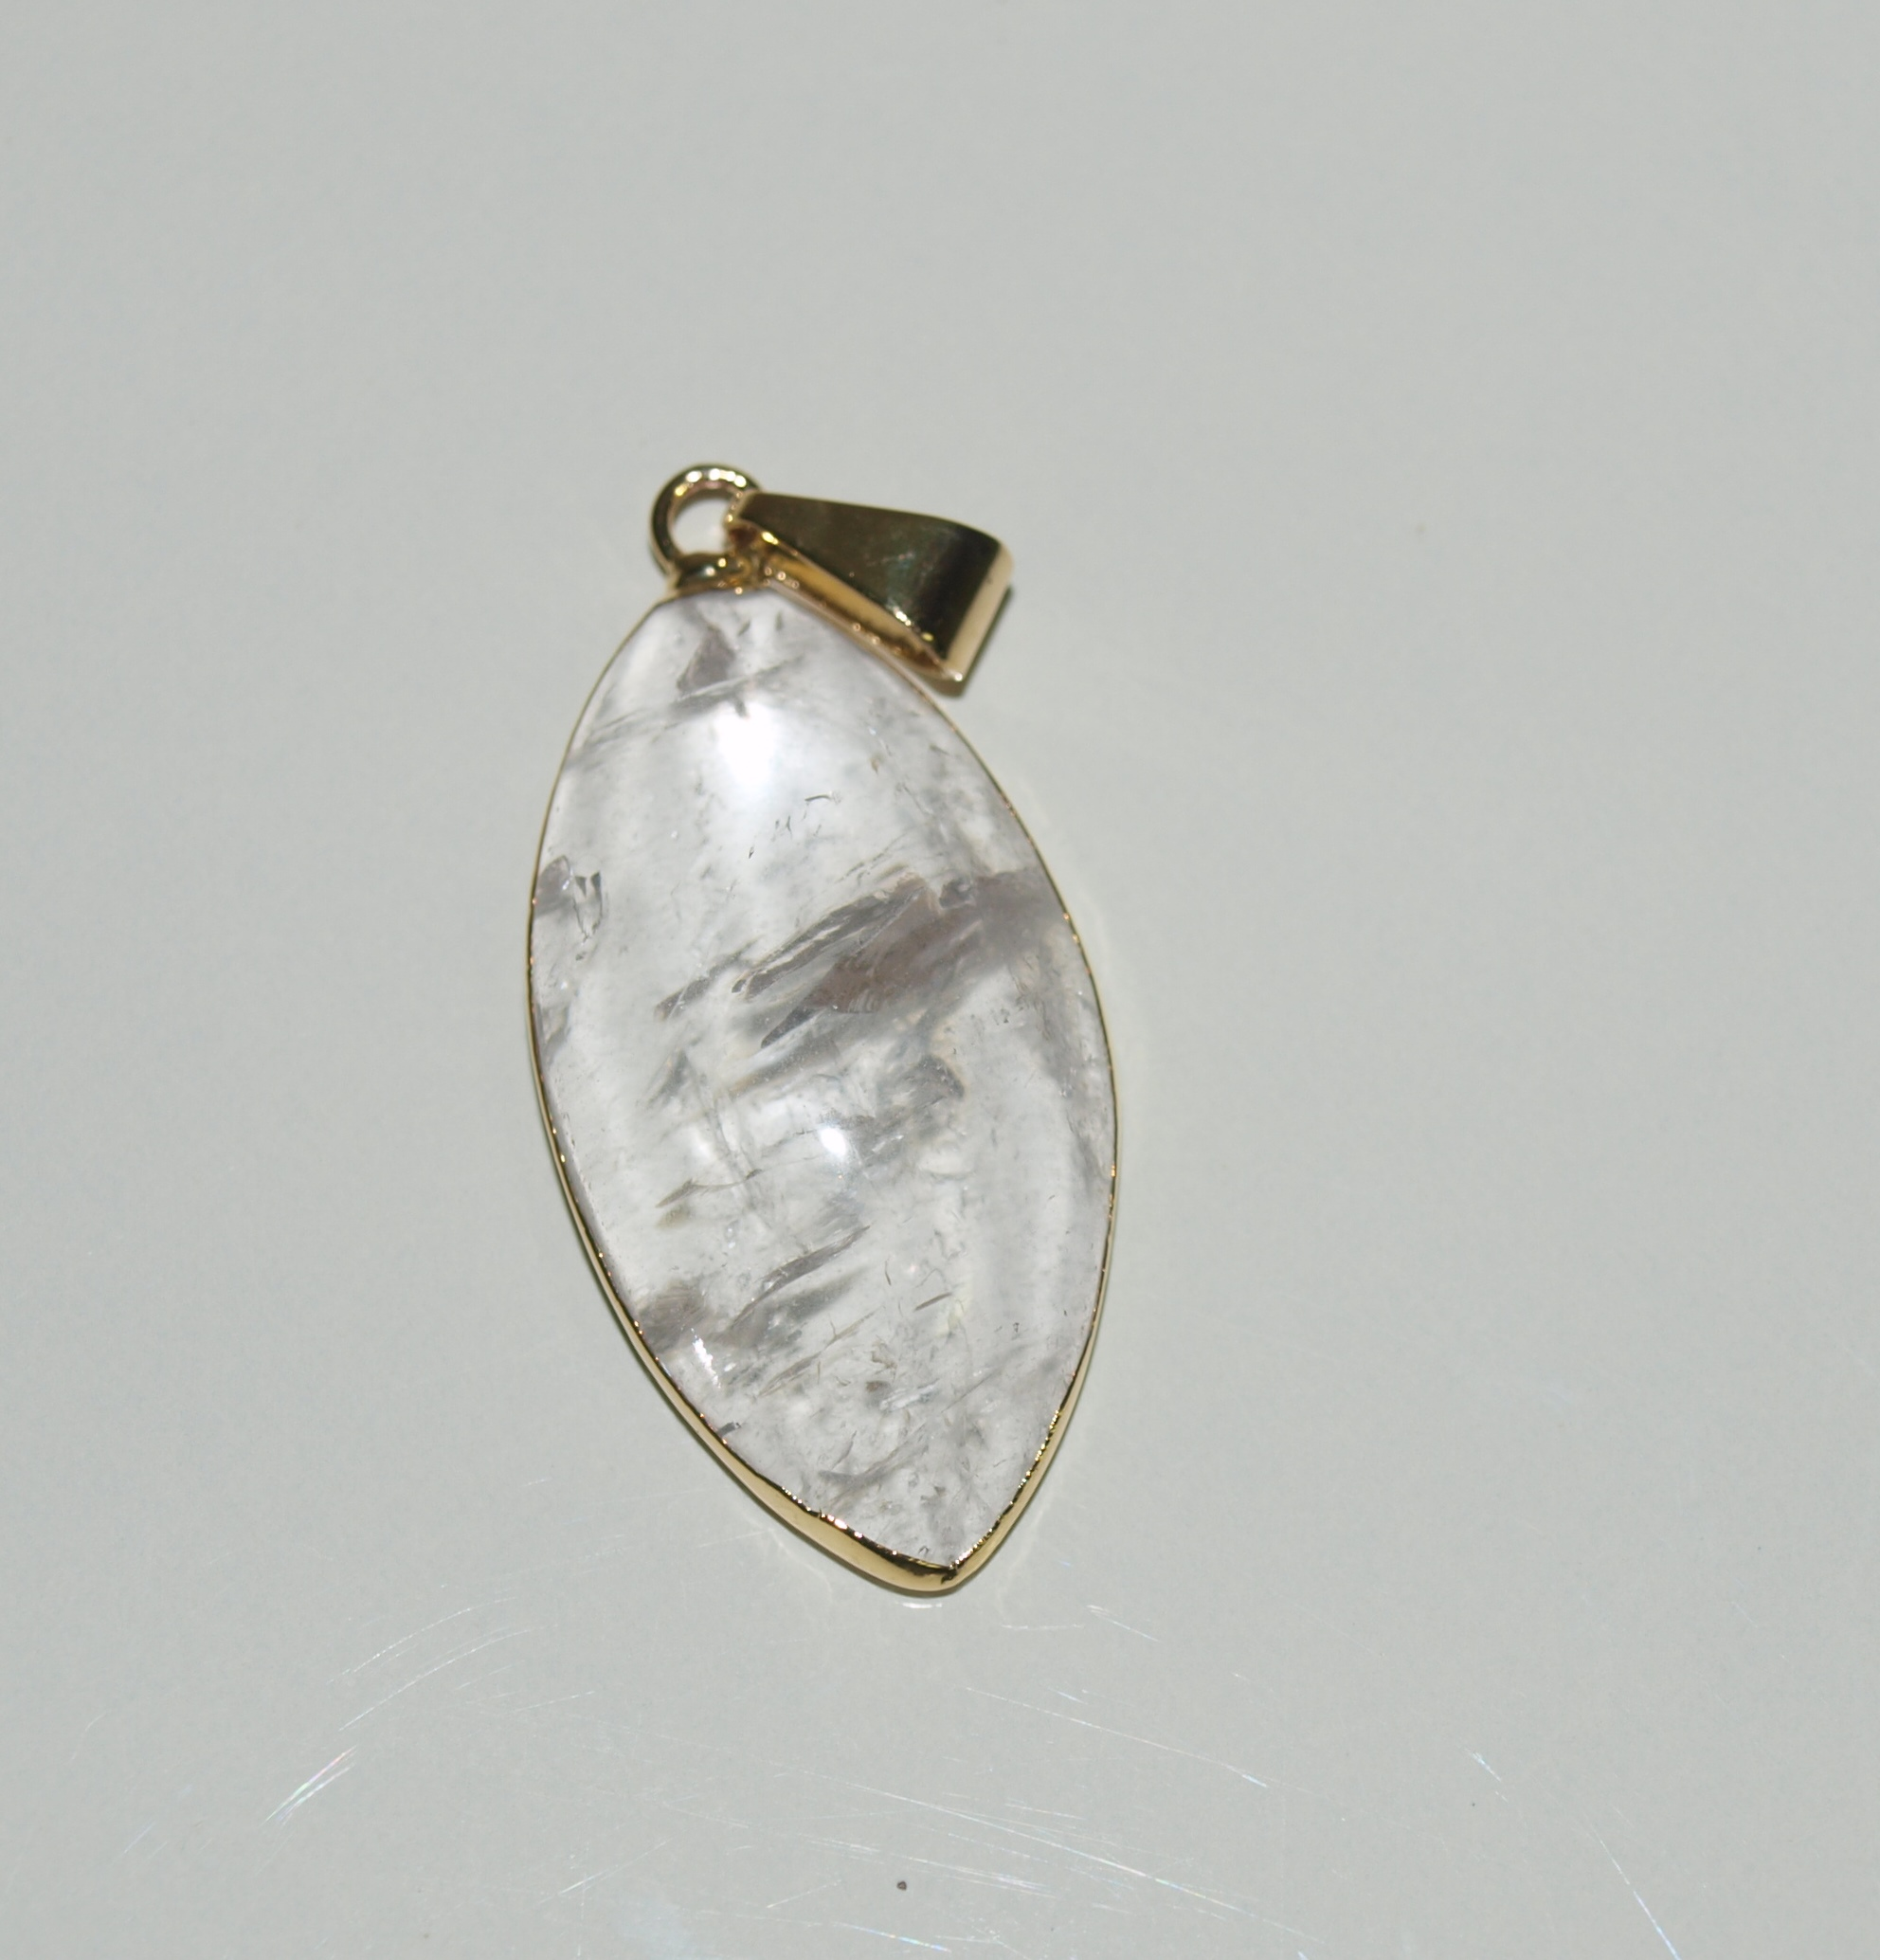 Stones from Uruguay - Clar Quartz Marquise Cabochon Pendant, 30x15mm. Gold Plated